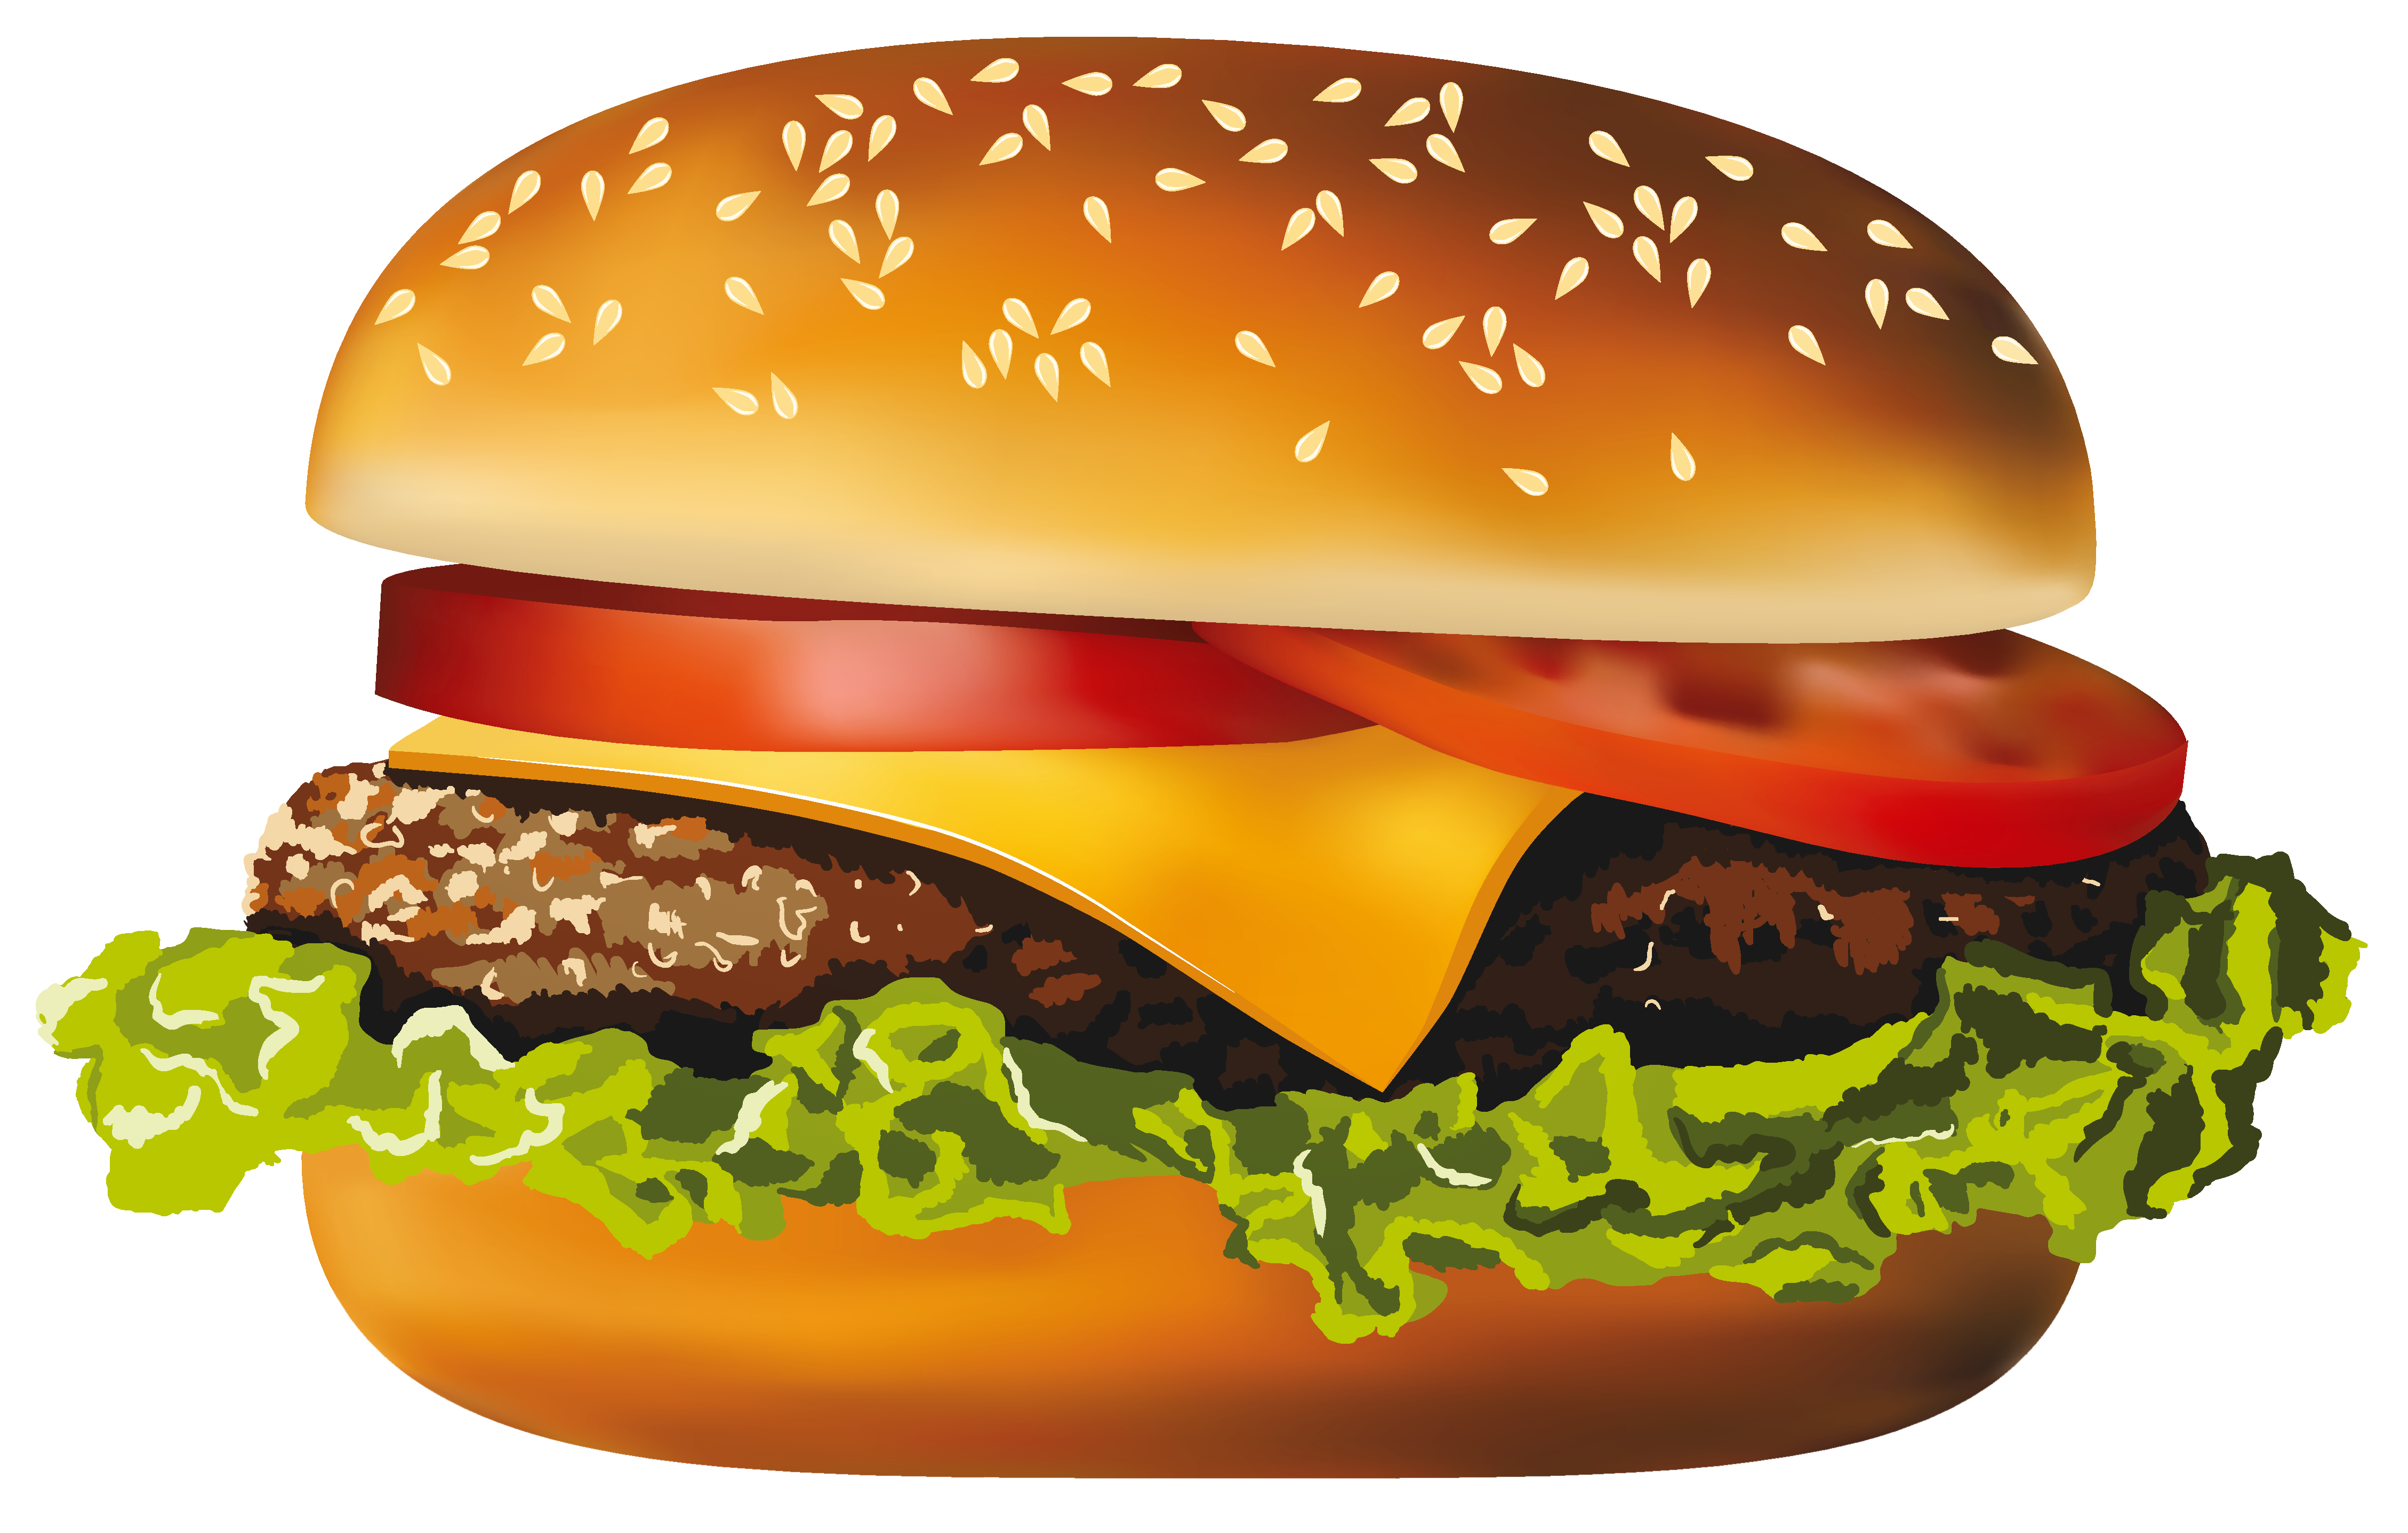 Potato clipart high re. Hamburger png vector gallery